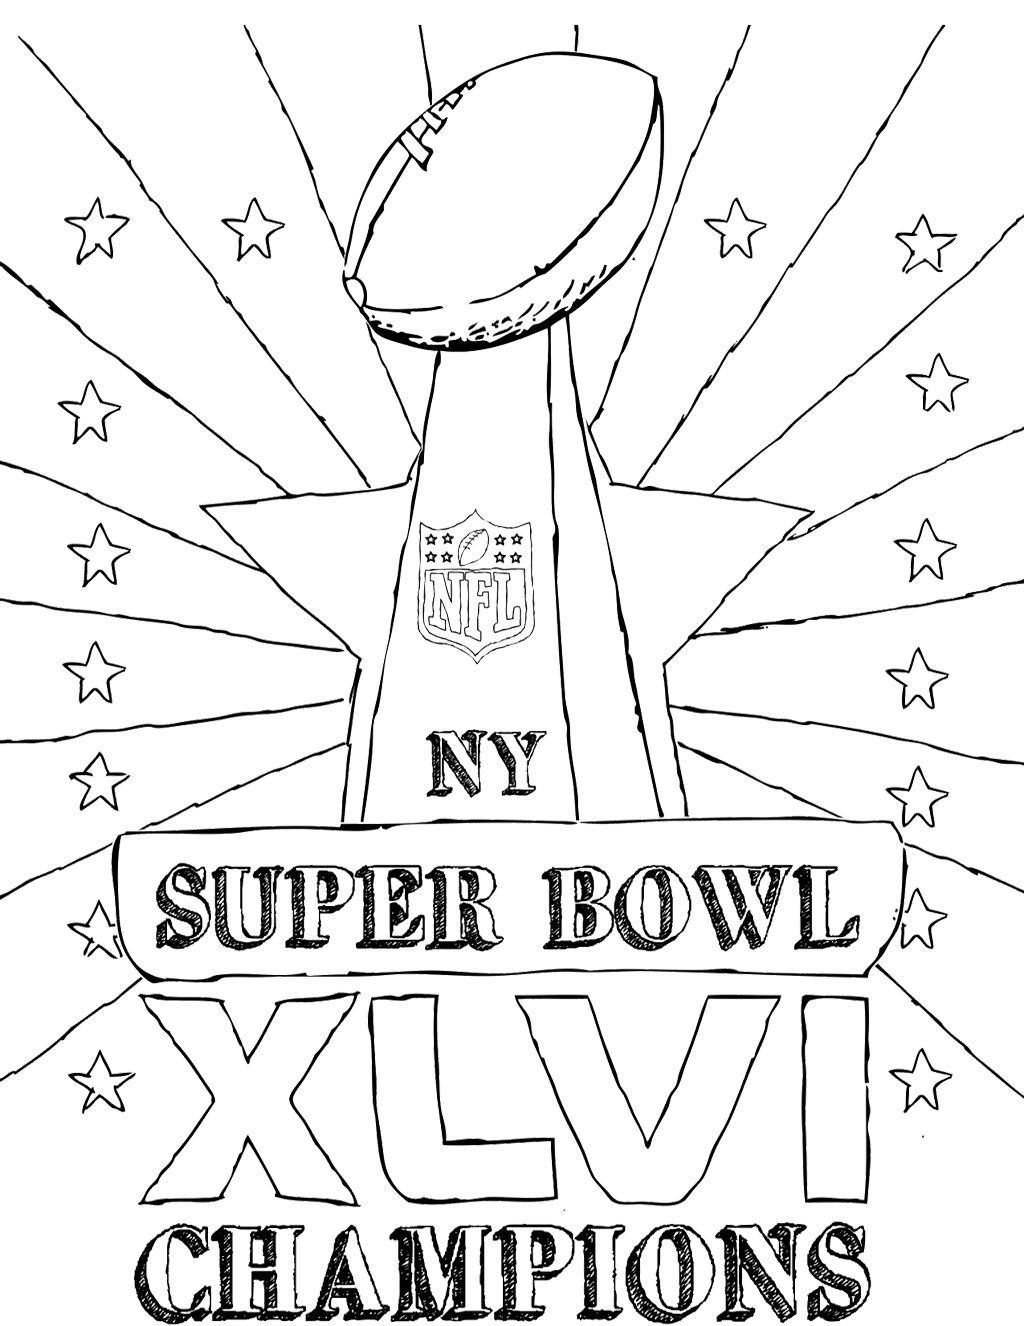 Super Bowl Champions Coloring Page | Kids Coloring Pages | Pinterest